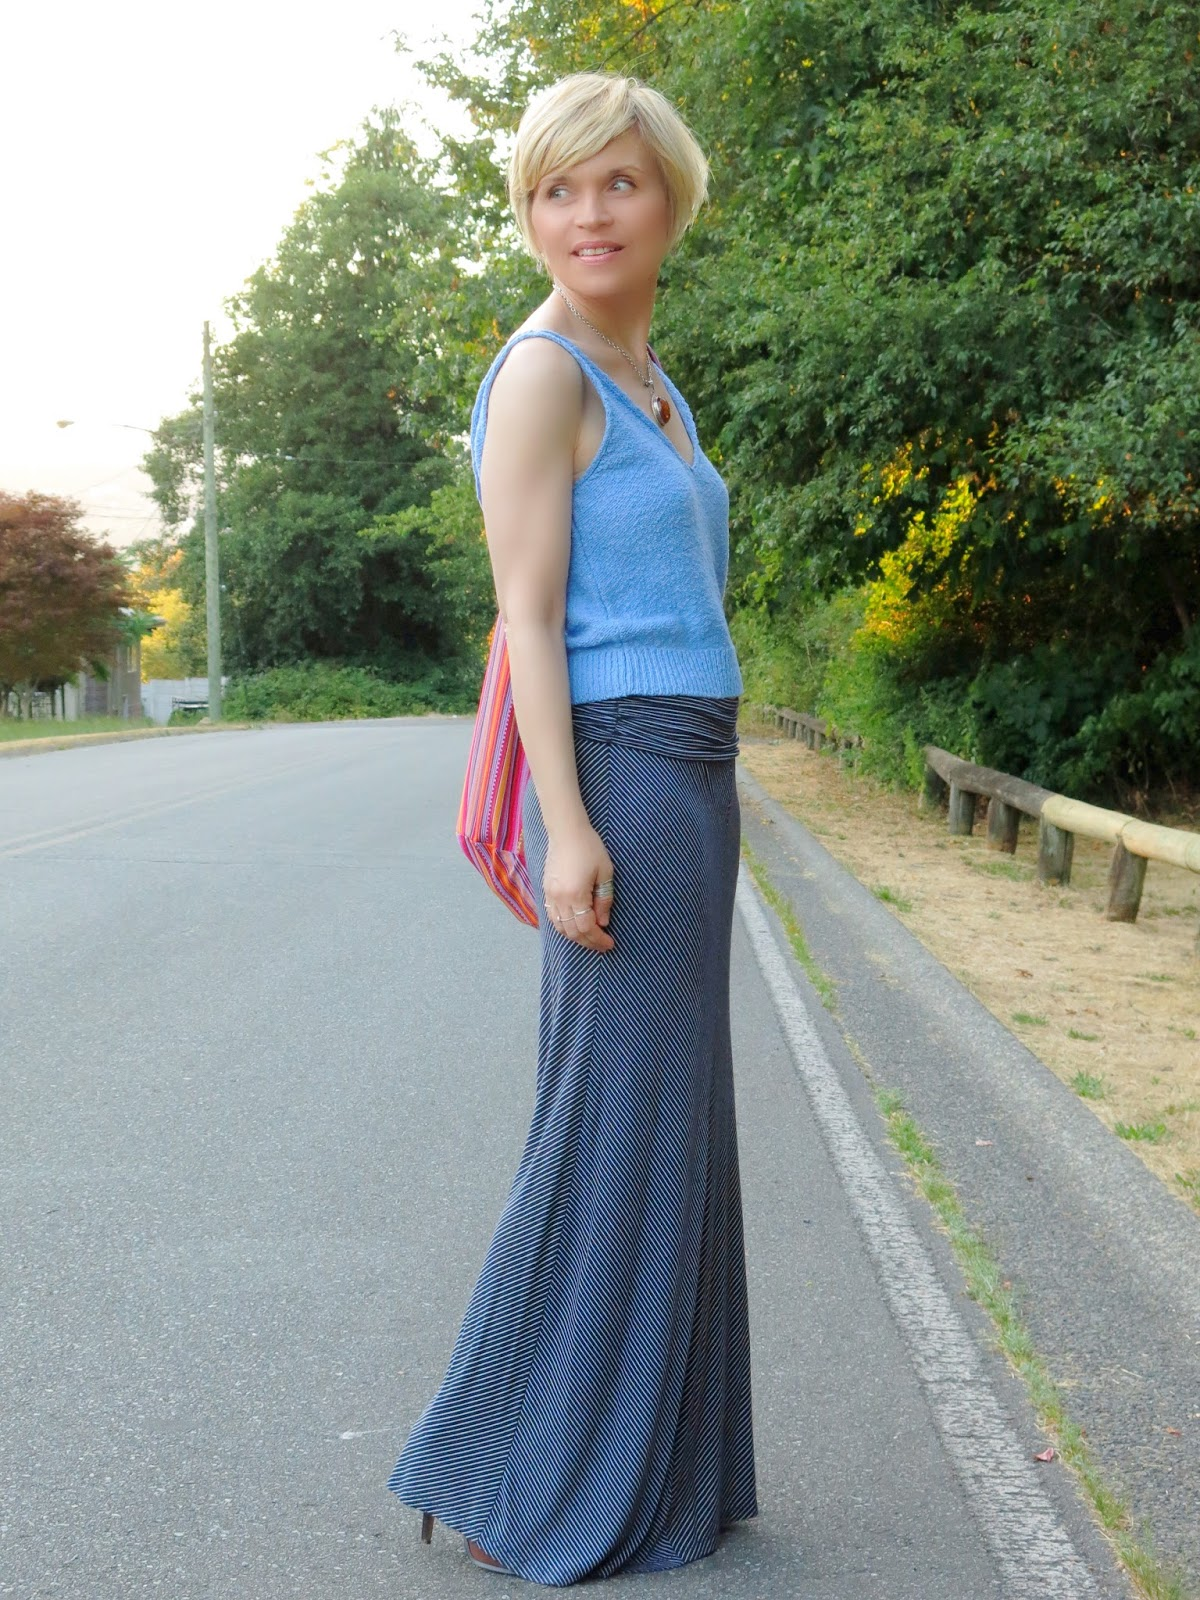 styling a striped maxi-skirt with a Zara knit camisole and colourful hobo bag